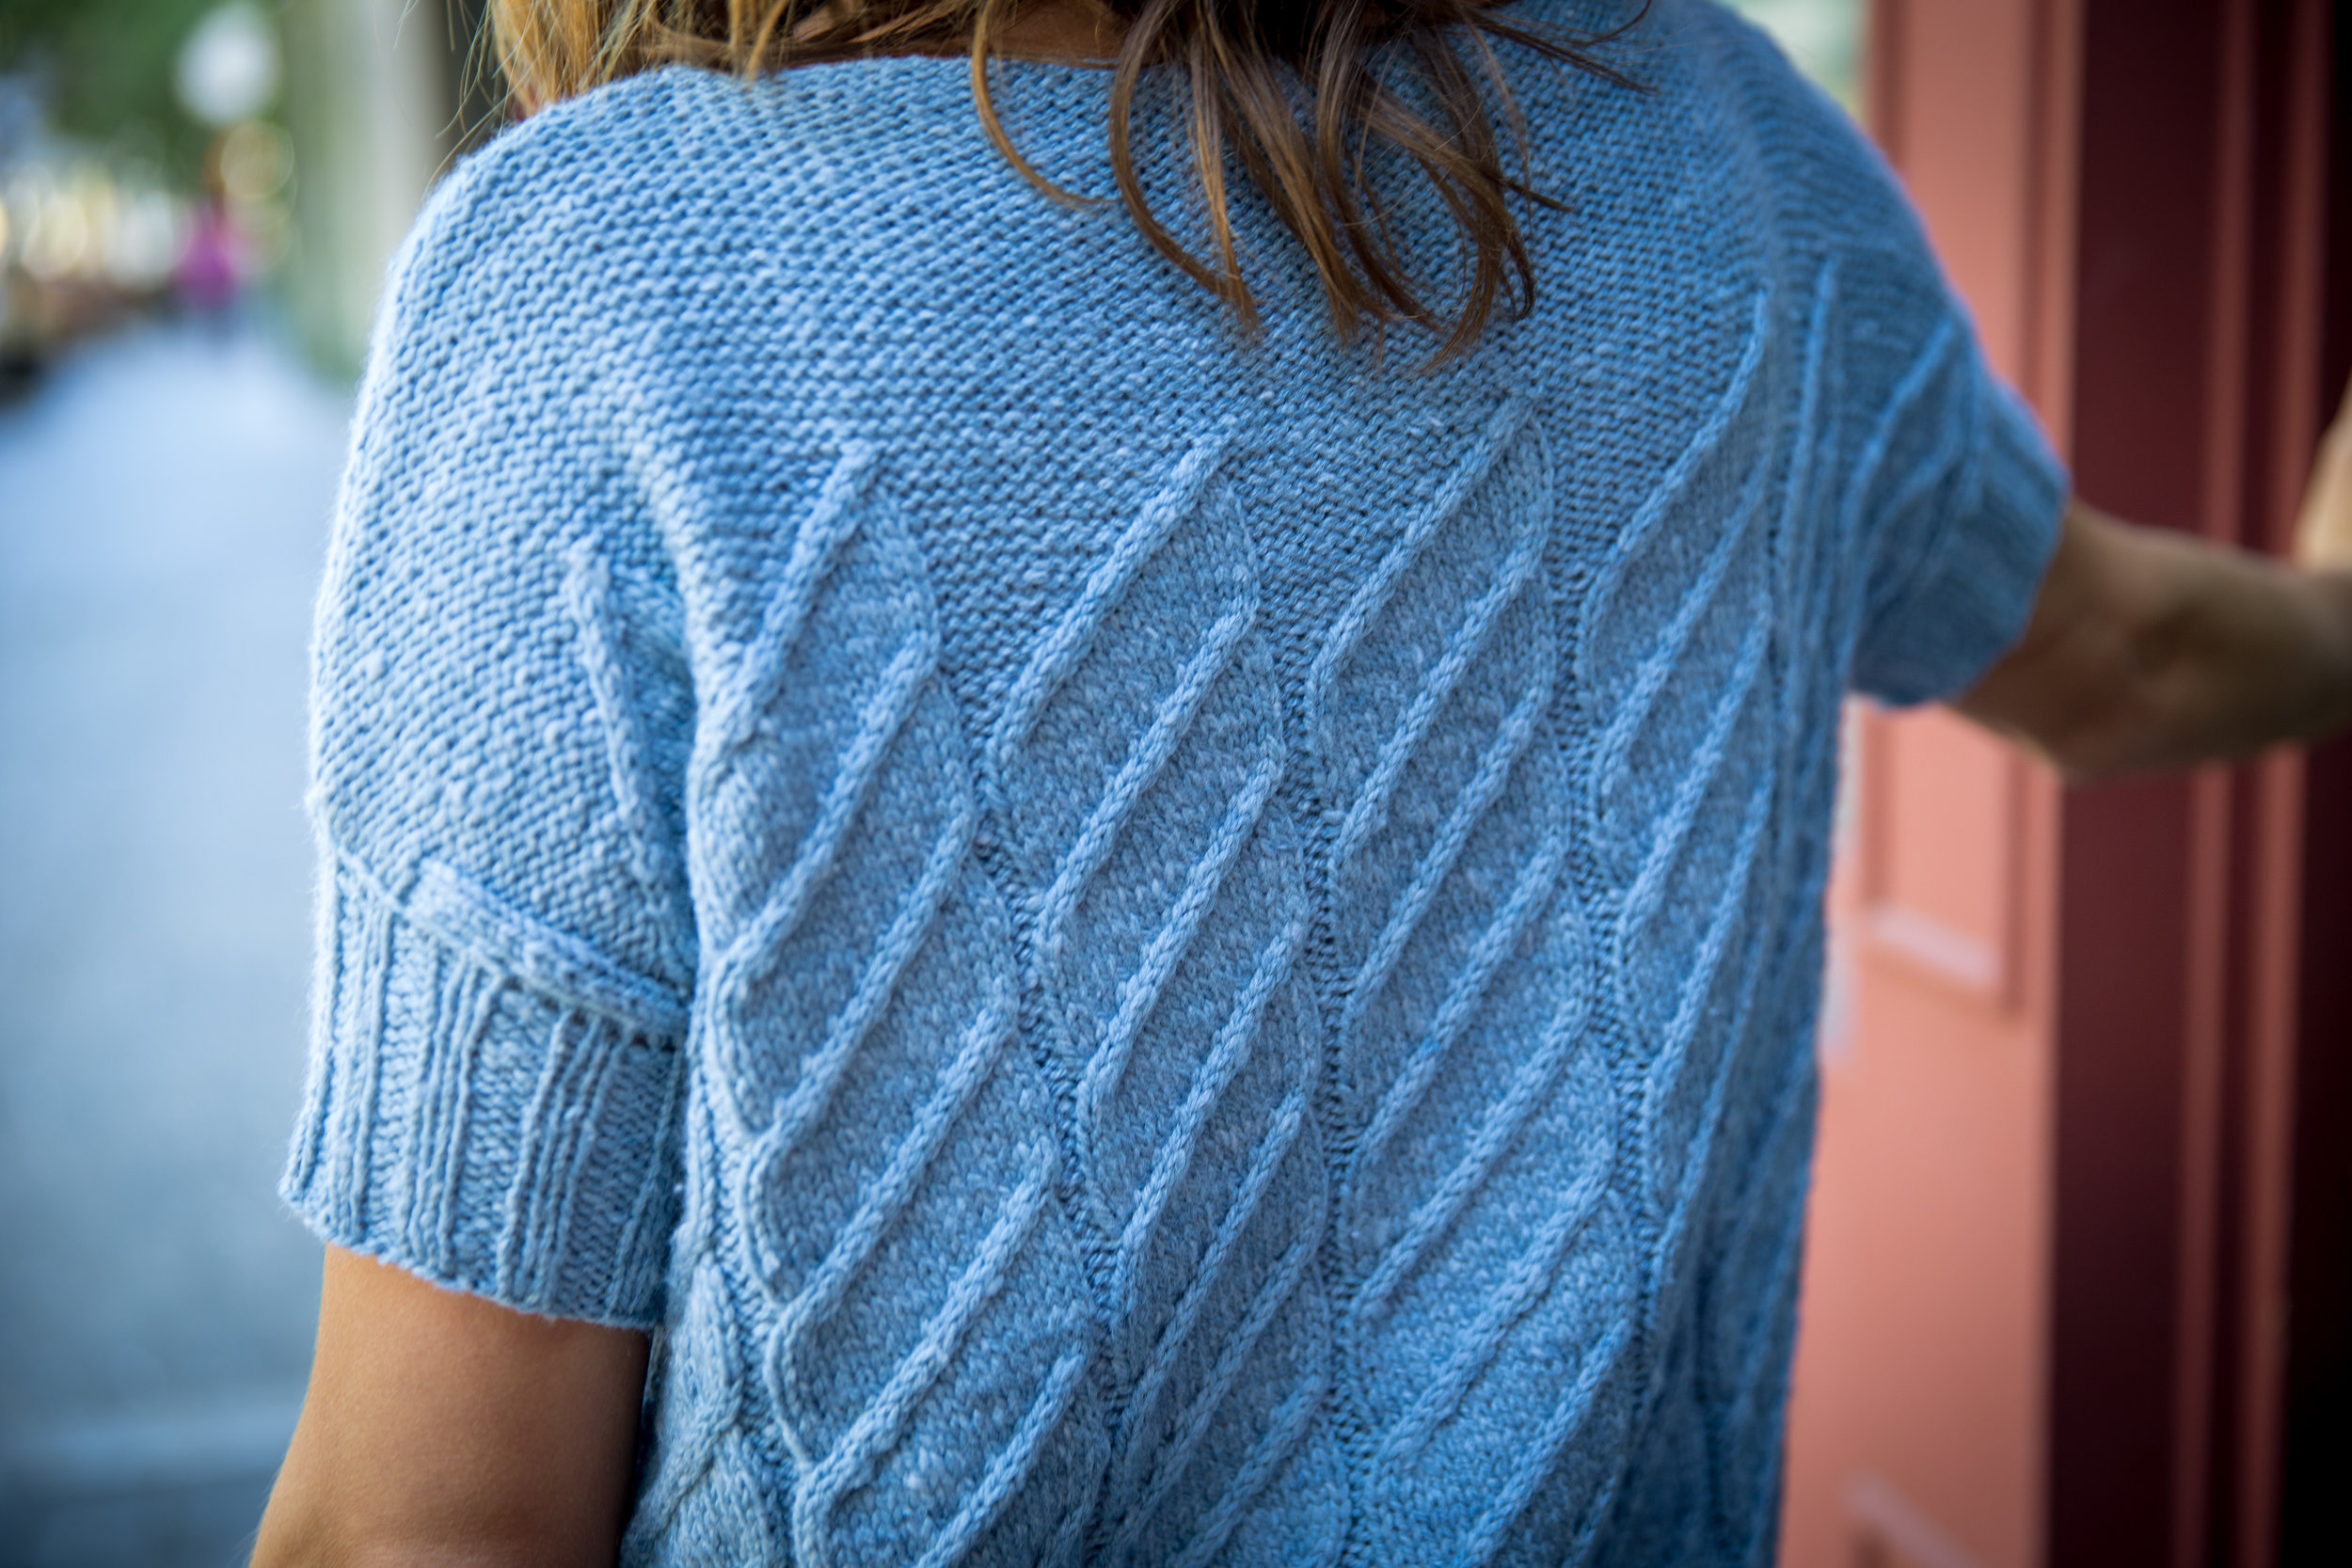 Larkspur, designed in Magpie Fibers' Solstice, has a short, picked-up sleeve, knit in a 2x2 rib, but could easily be modified for a full-length or three-quarter-length sleeve.